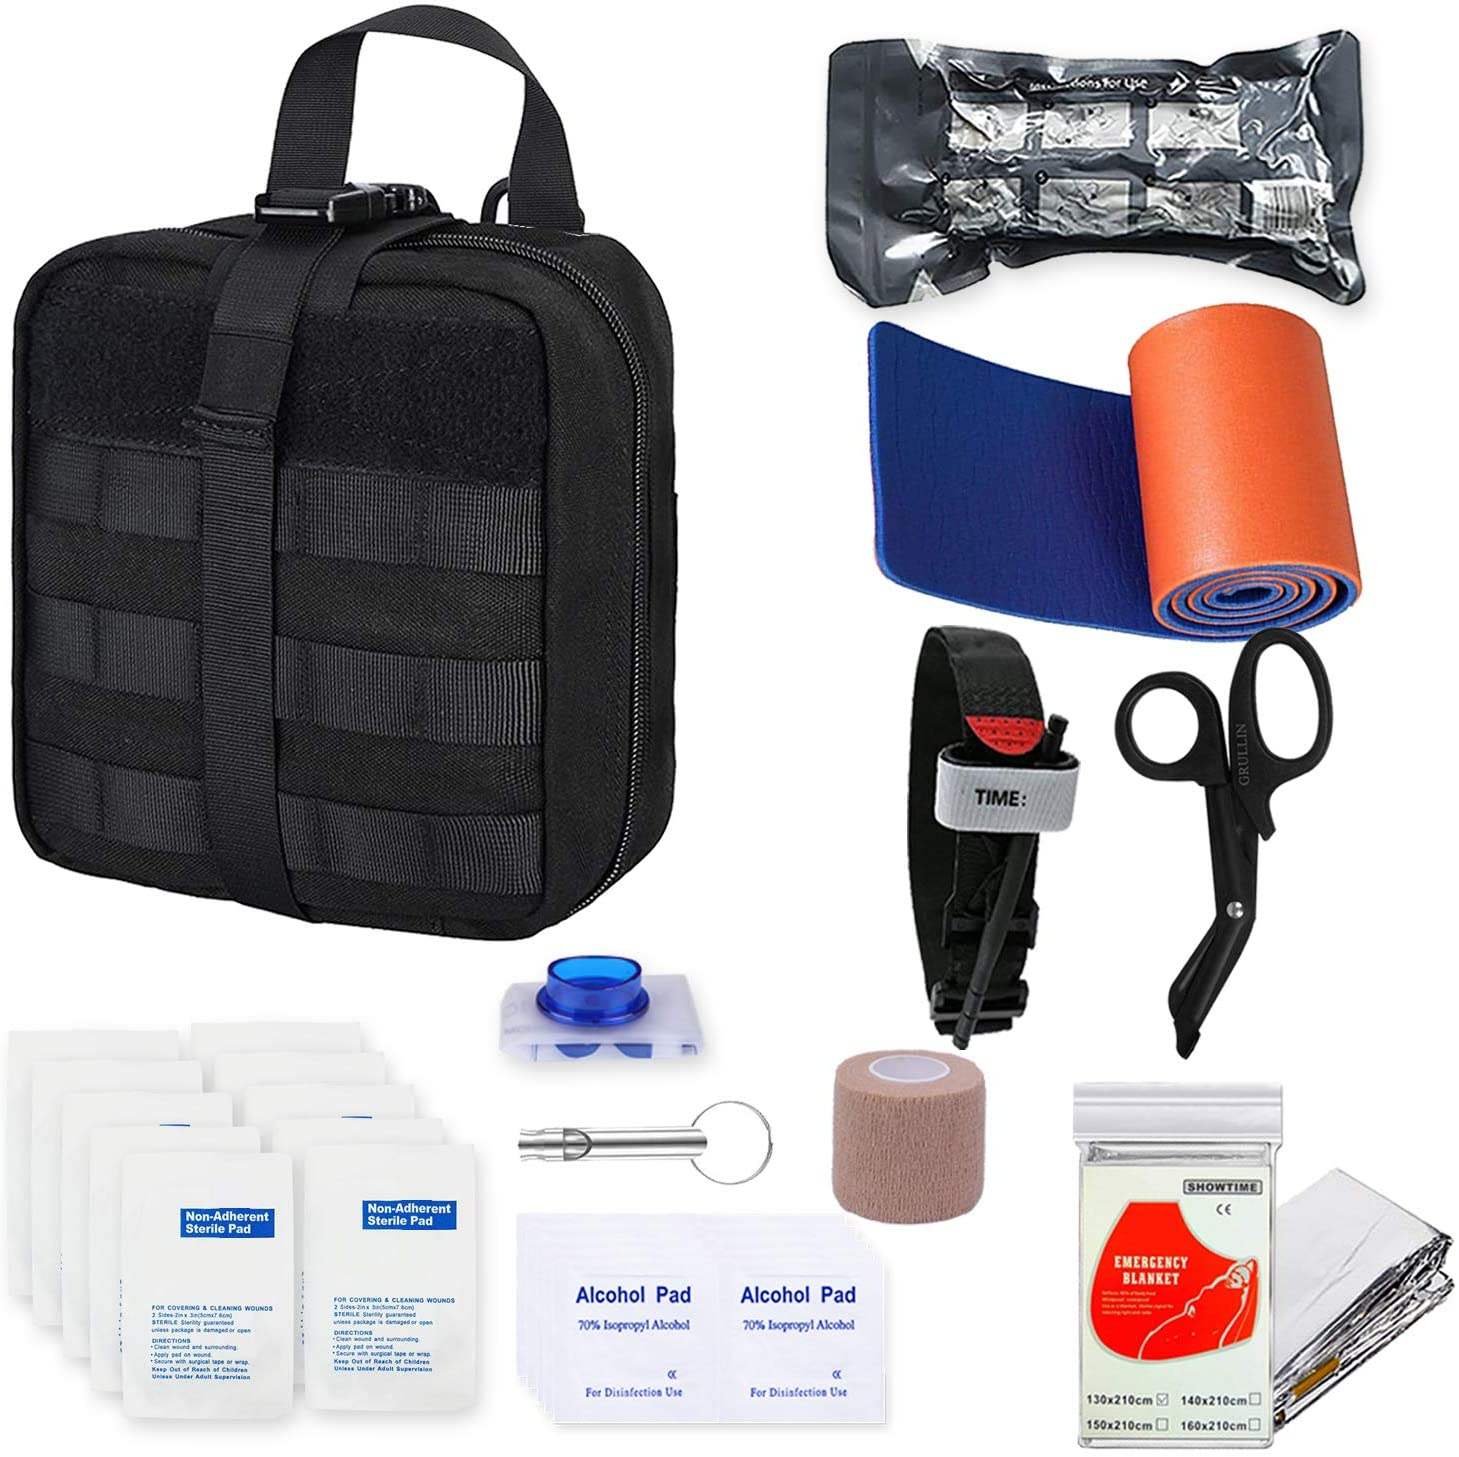 GRULLIN Survival First Aid Kit, 39 Pieces Tactical Molle EMT IFAK Pouch Emergency First Aid Survival Kits Trauma Bag Outdoor Gear for Camping Hiking Hunting Travel Car Adventures (Black)